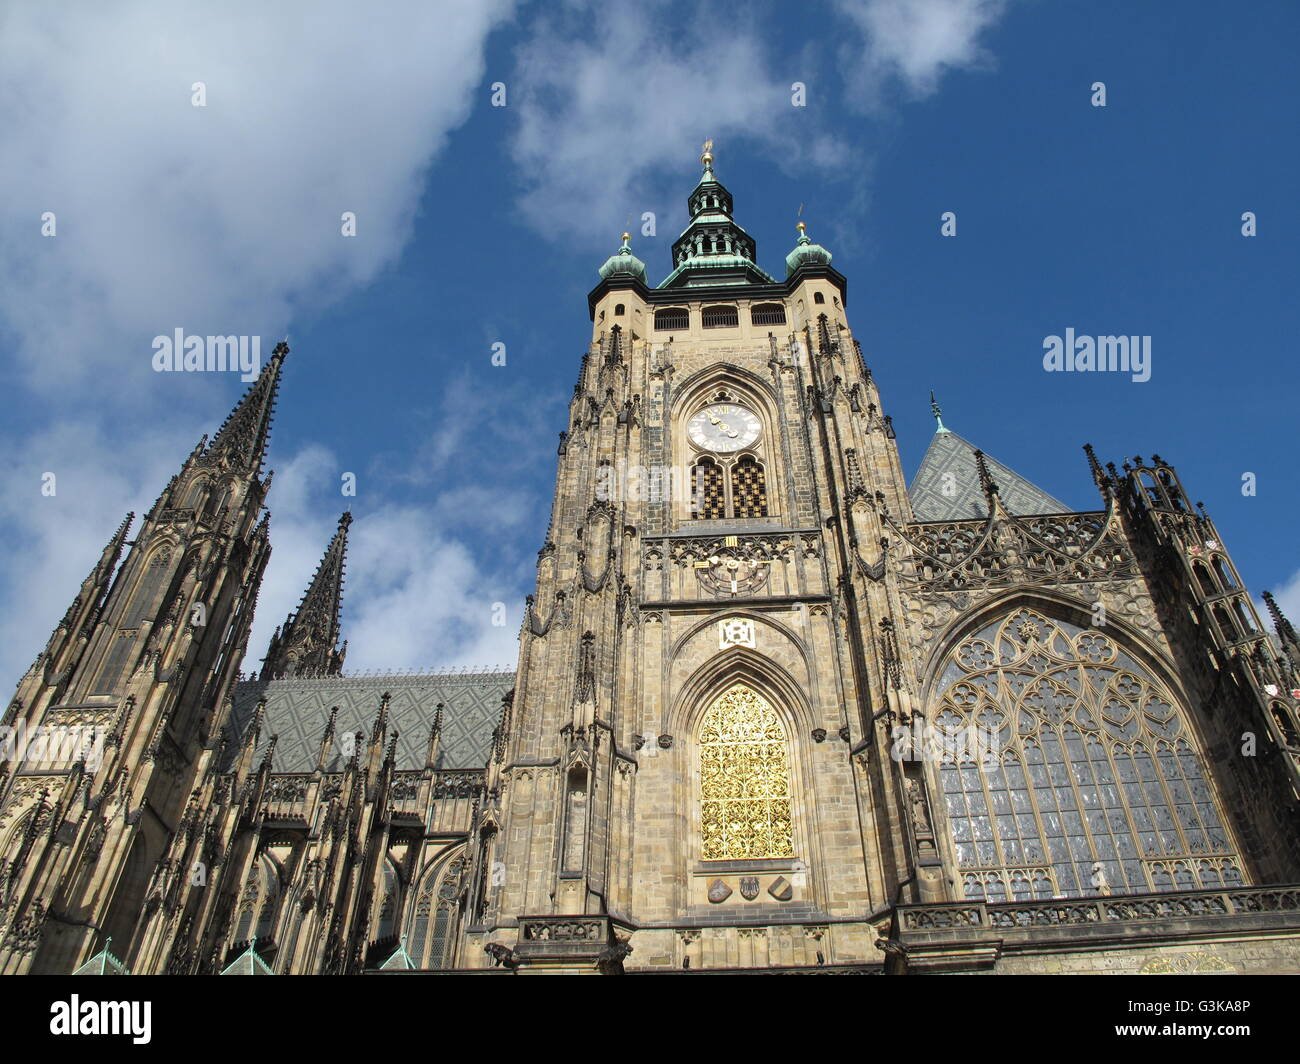 St. Vitus Cathedral, Prague Castle - Stock Image